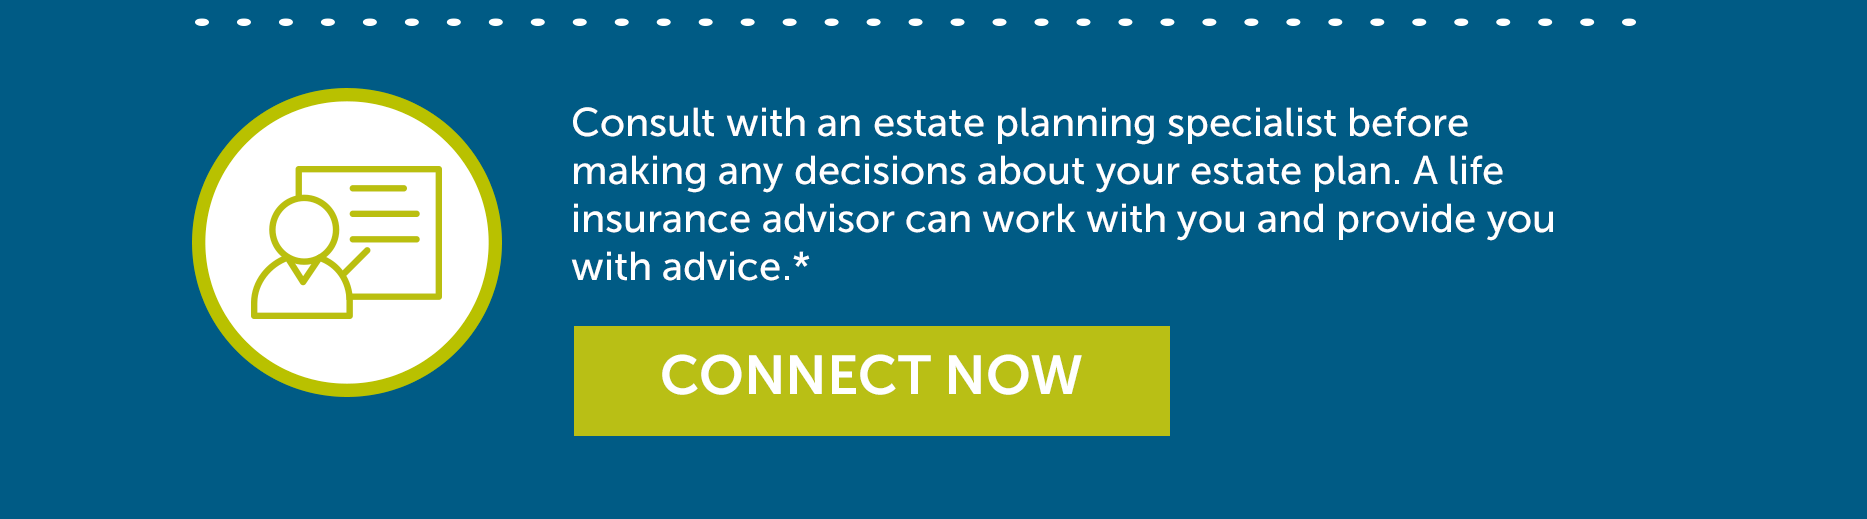 Estate planning and connect with a life insurance advisor button